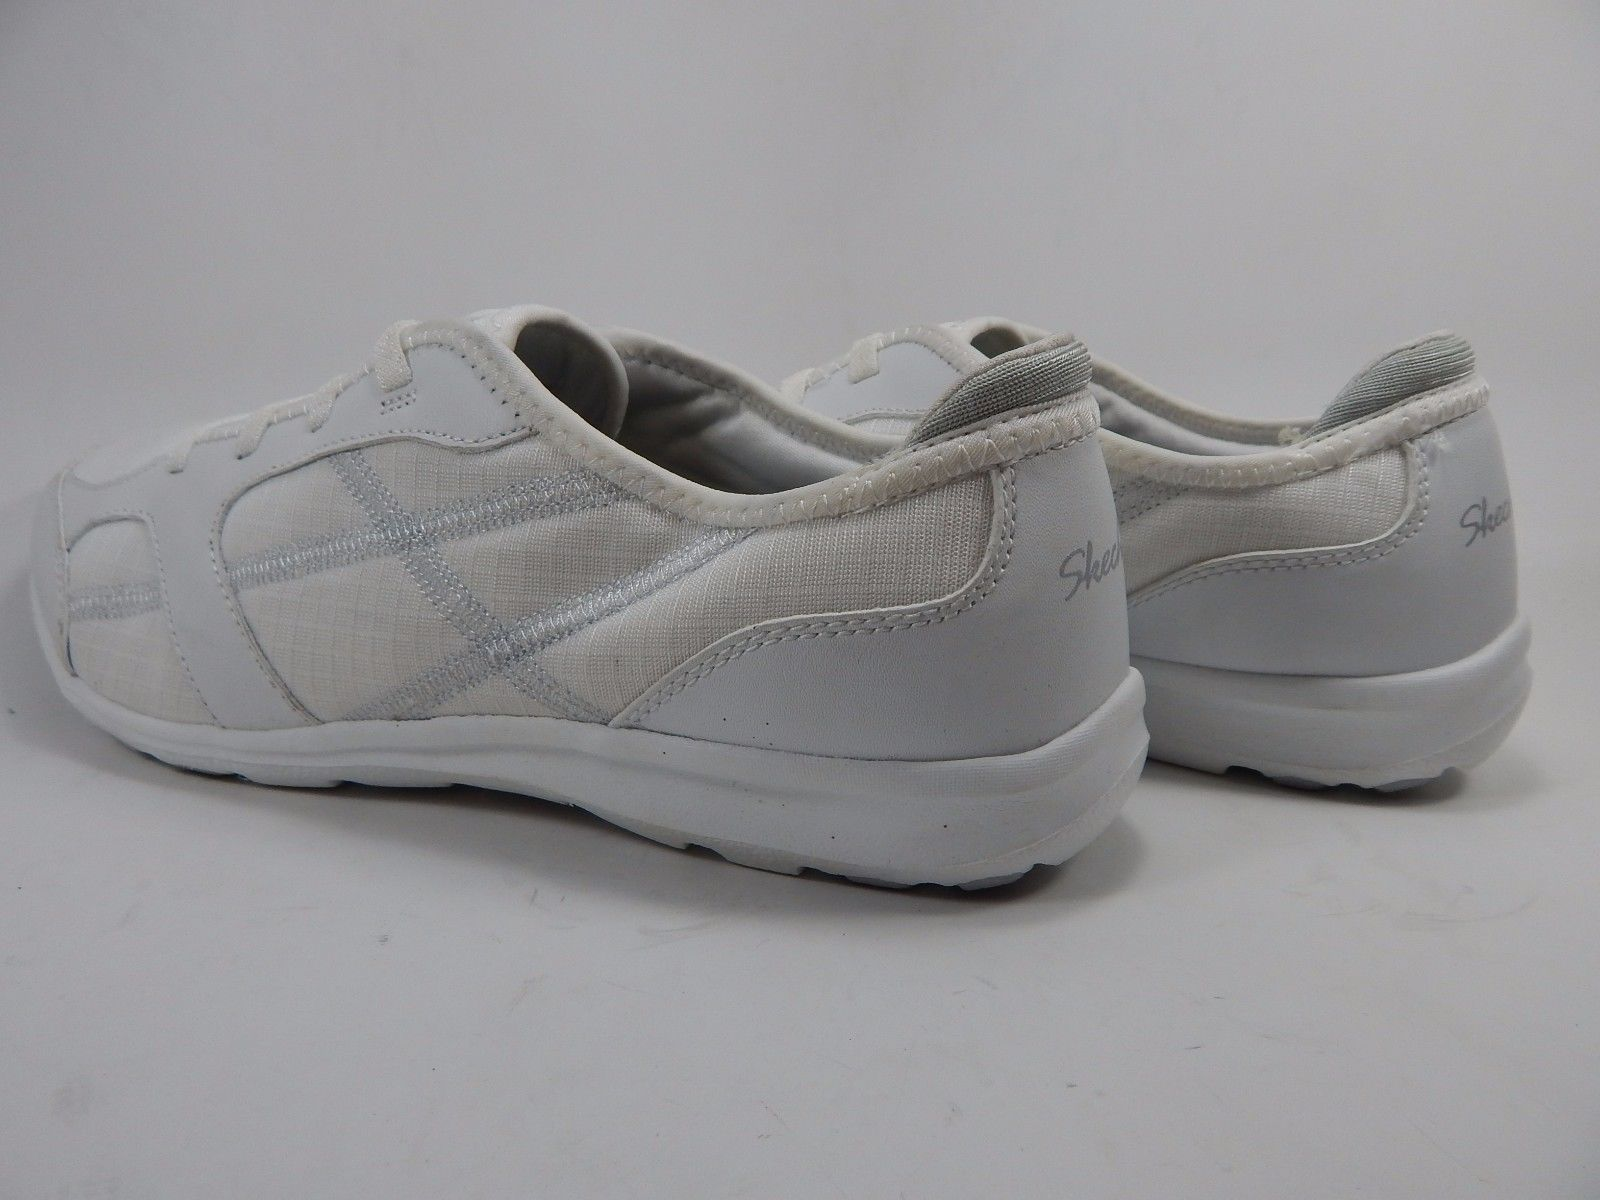 Skechers Relaxed Fit Dreamchaser Ante Up Women's Shoes Size US 9.5 M (B) EU 39.5